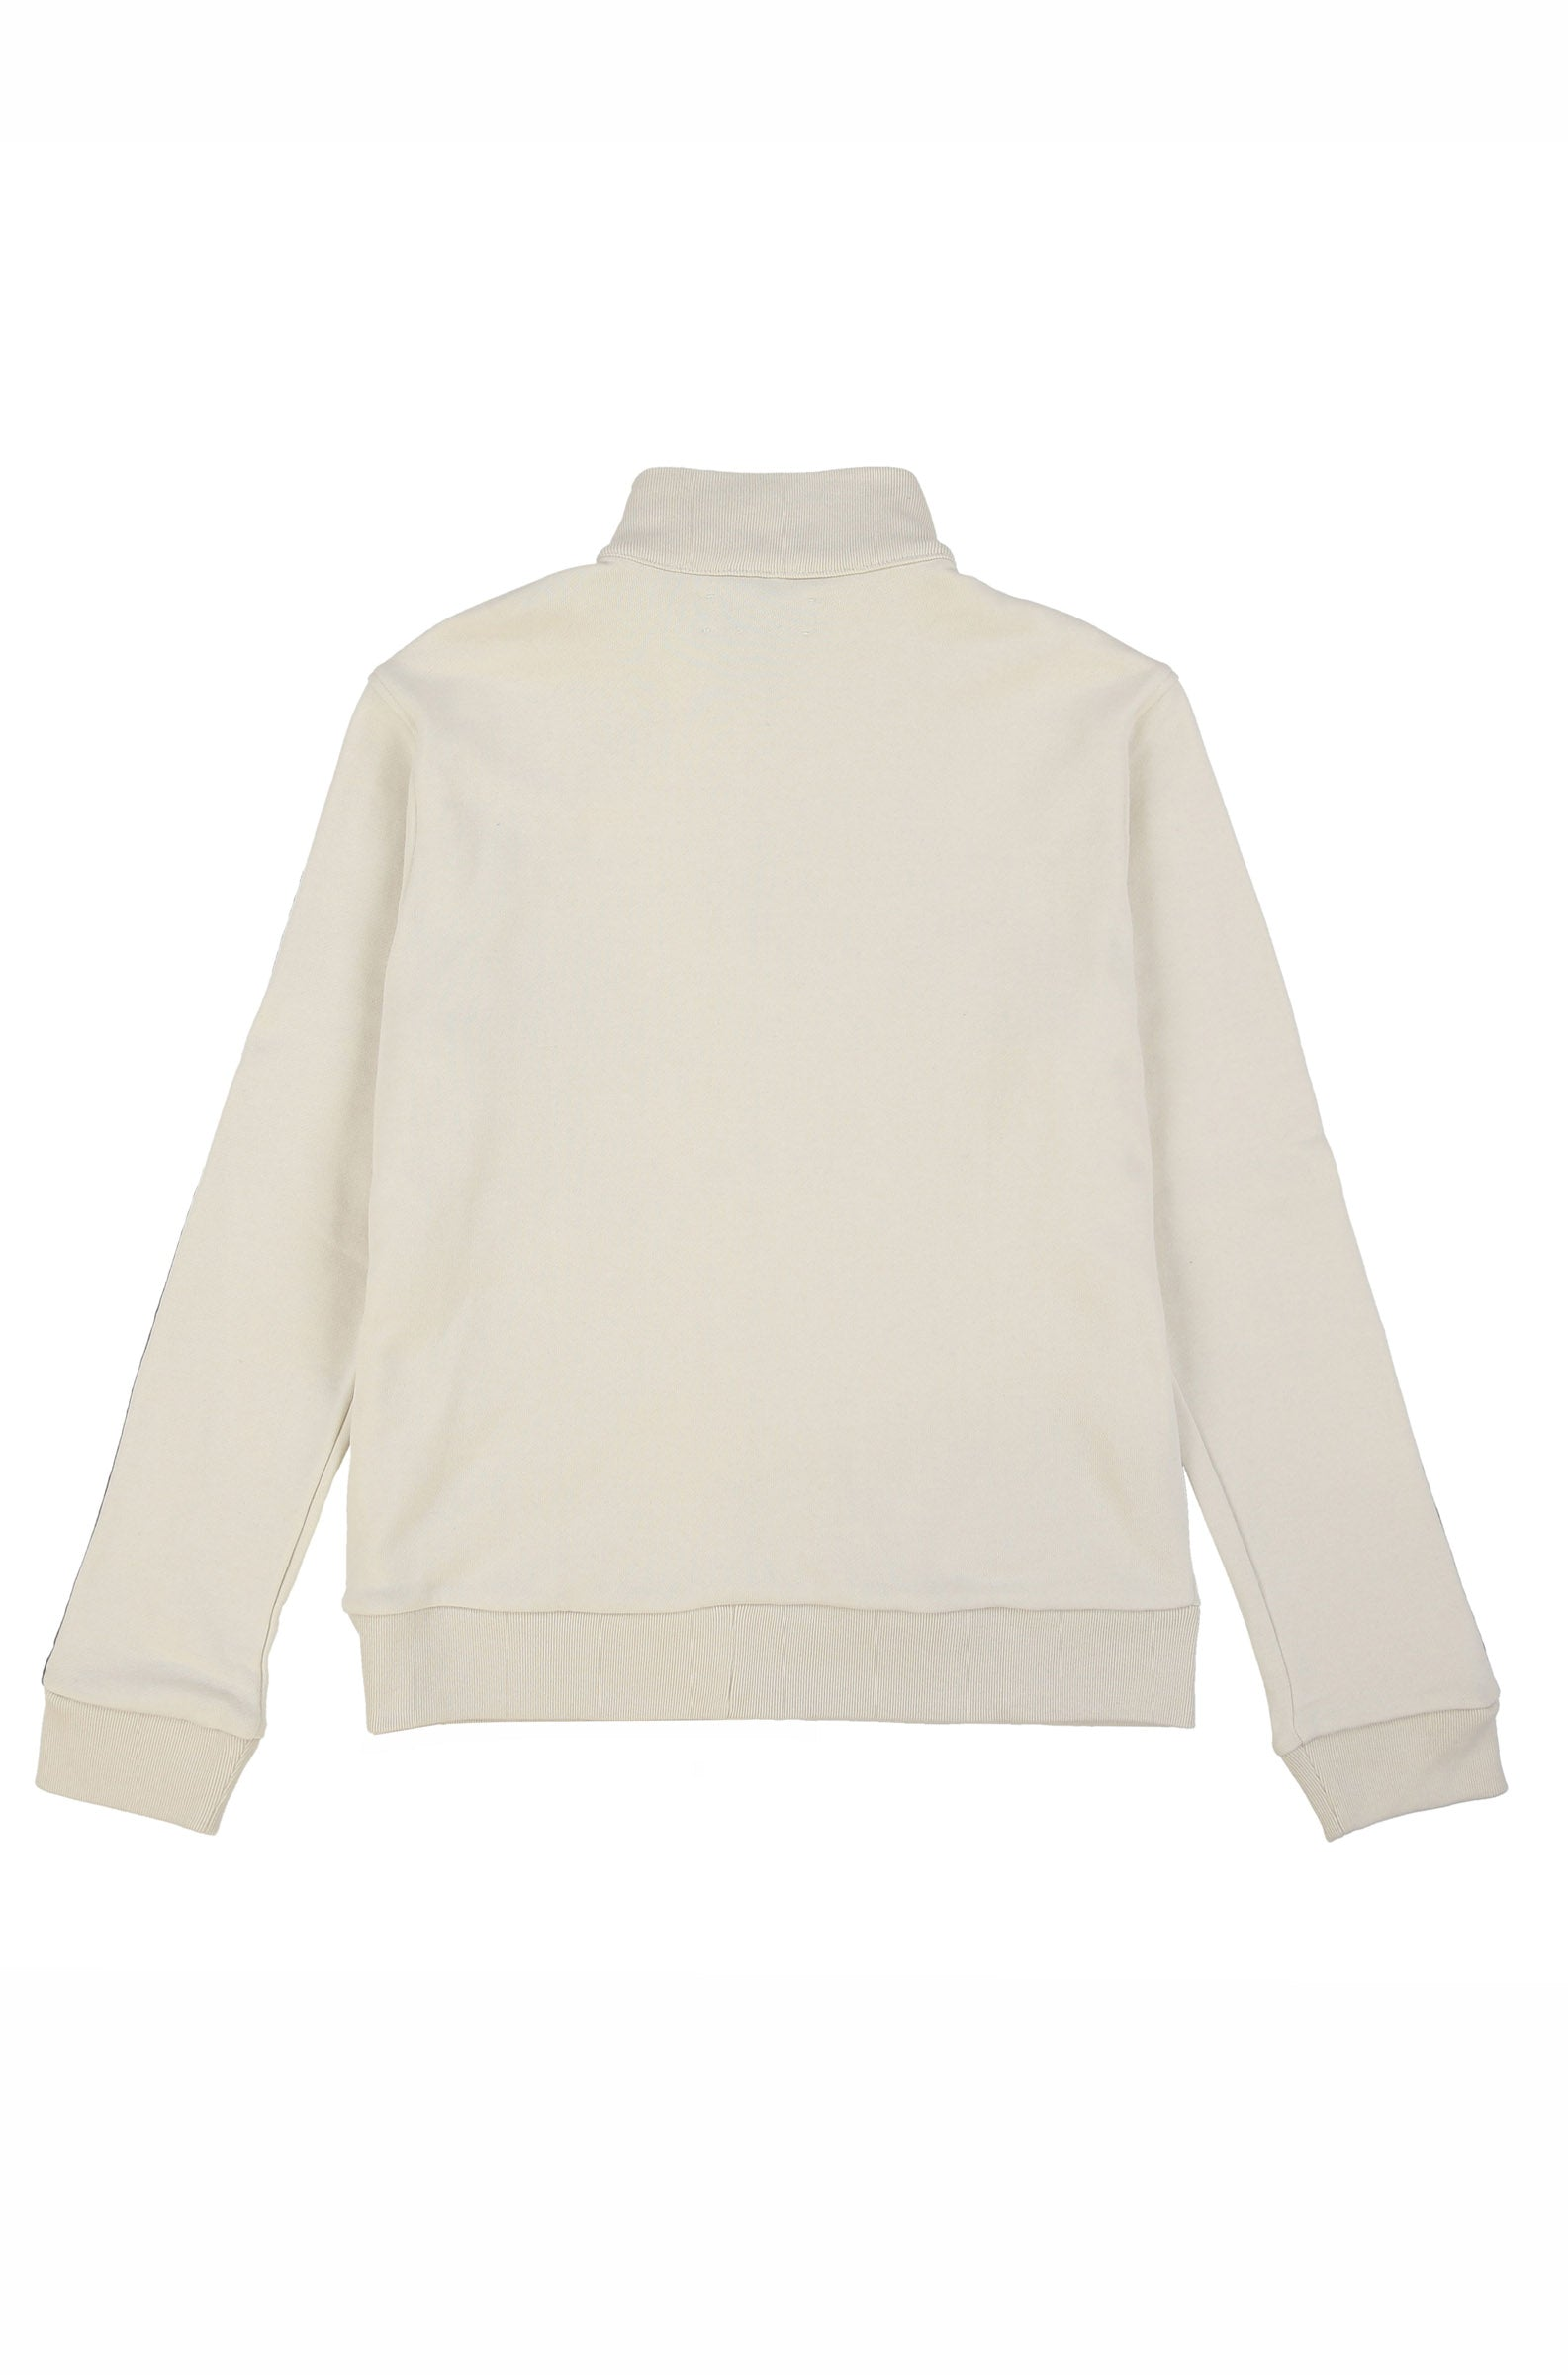 JOMO DOUBLE TRACK JACKET (CREAM)